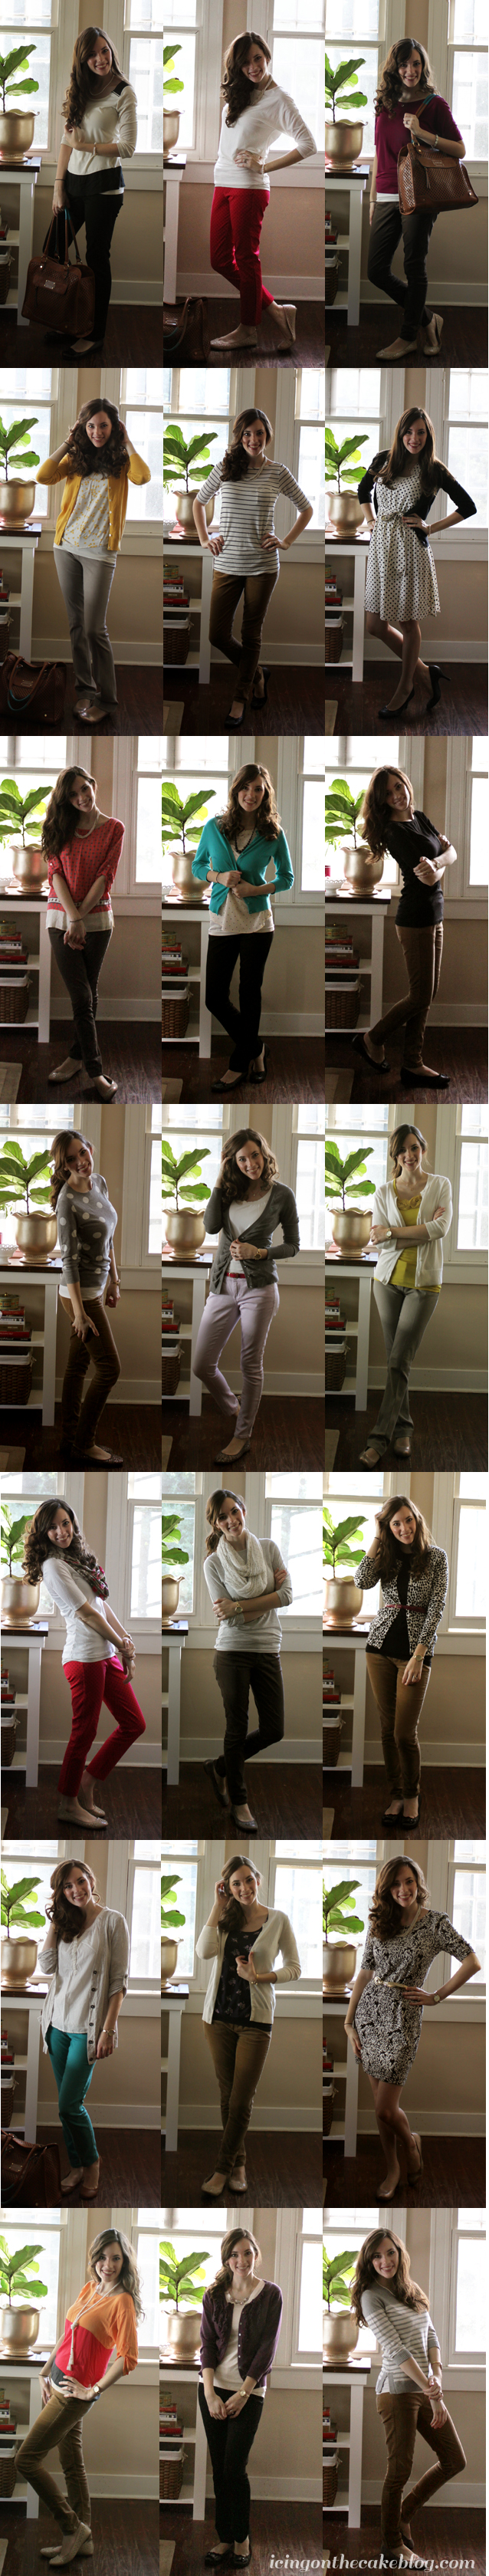 business casual outfits with watermark